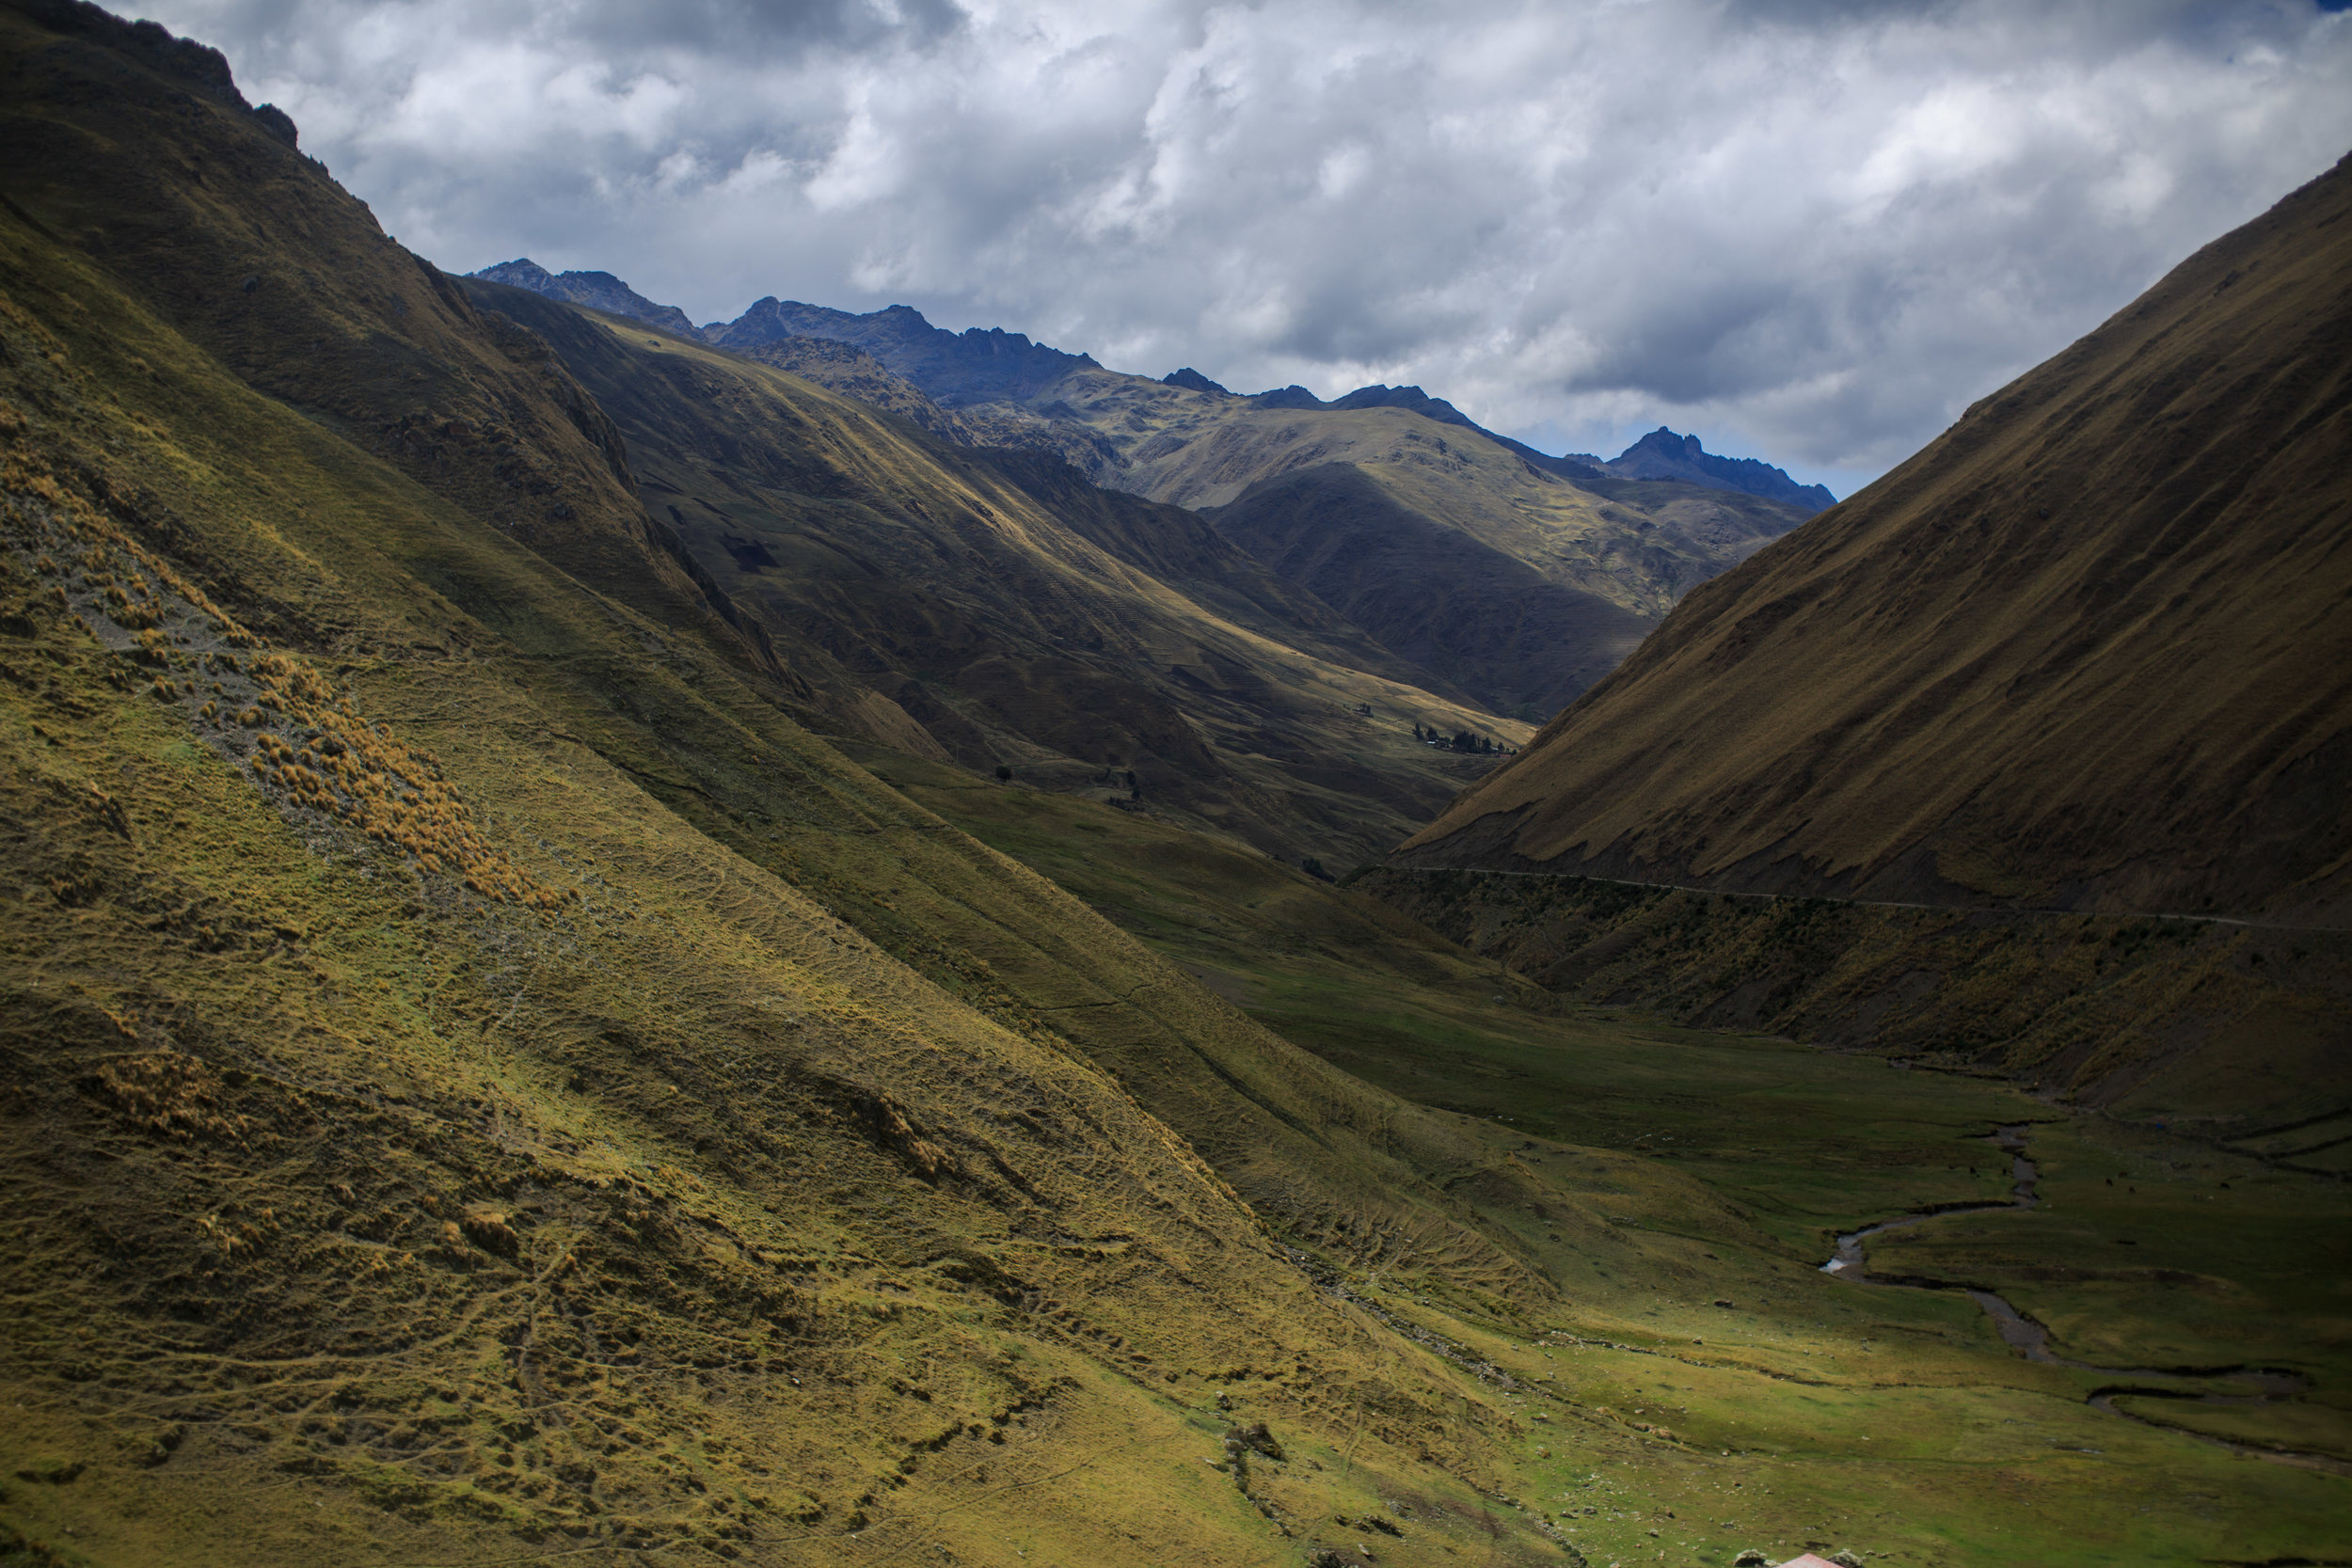 The views across the Sacred Valley of the Incas from the Yupanqui Mamani's alpaca shearing station.